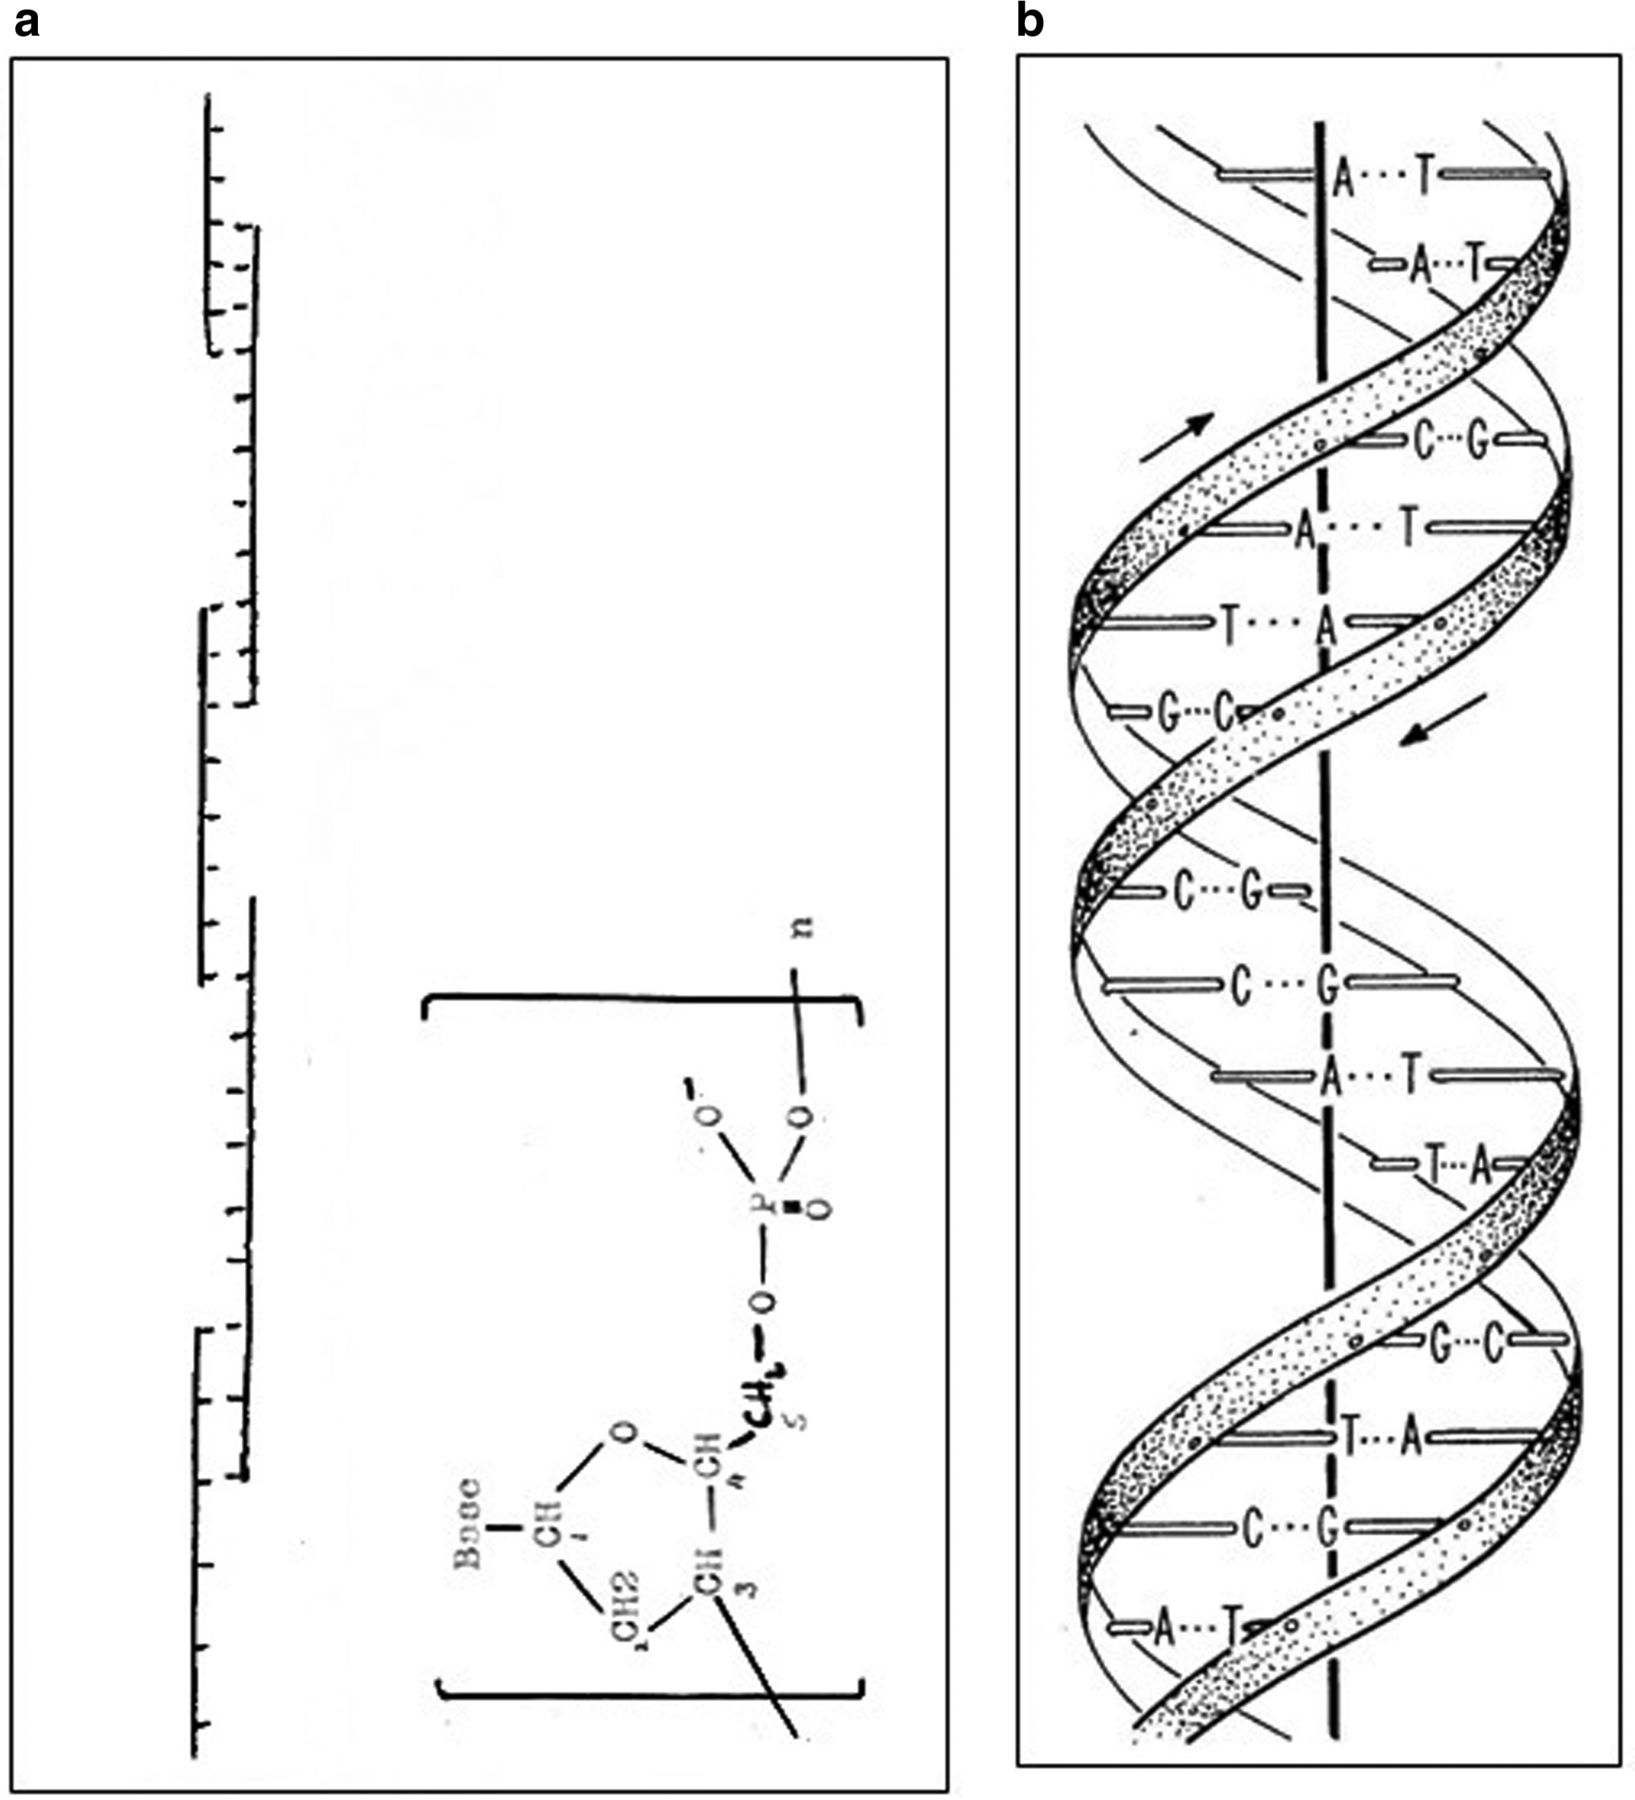 hight resolution of 1635x1800 the discovery of hydrogen bonds in dna and a re evaluation dna model drawing